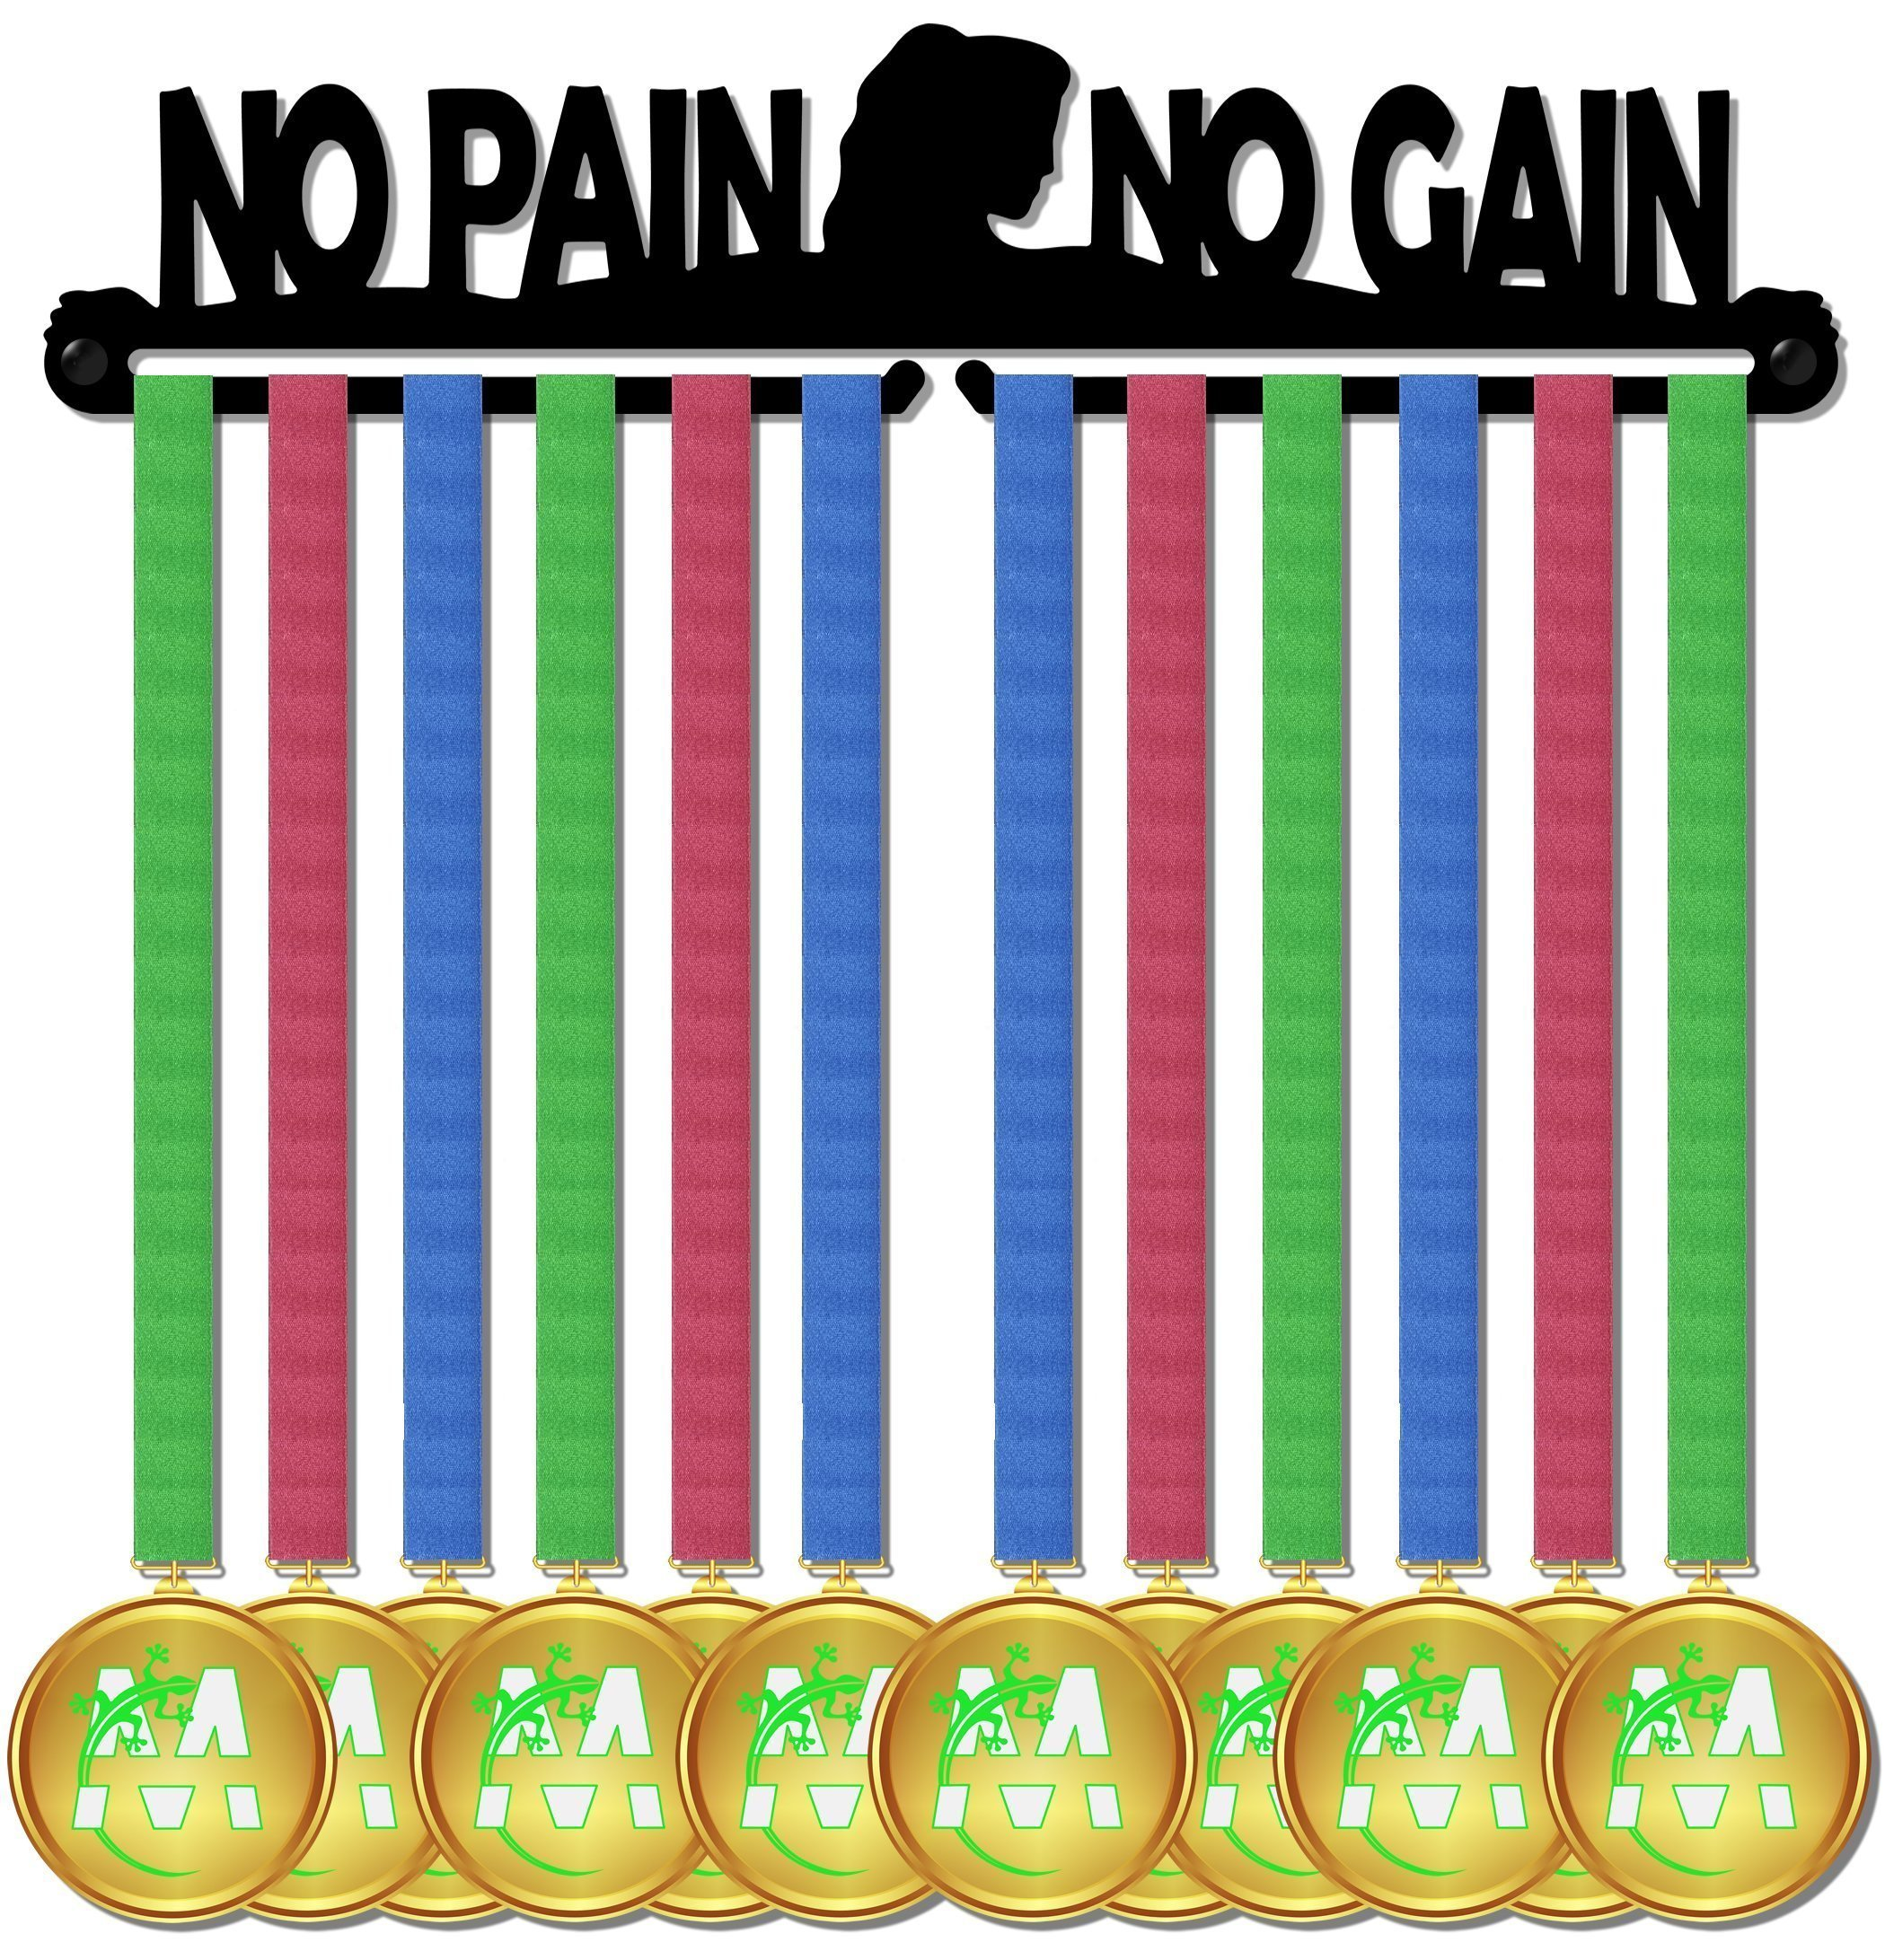 Medal Display medagliere da muro madal hanger no pain no gain design